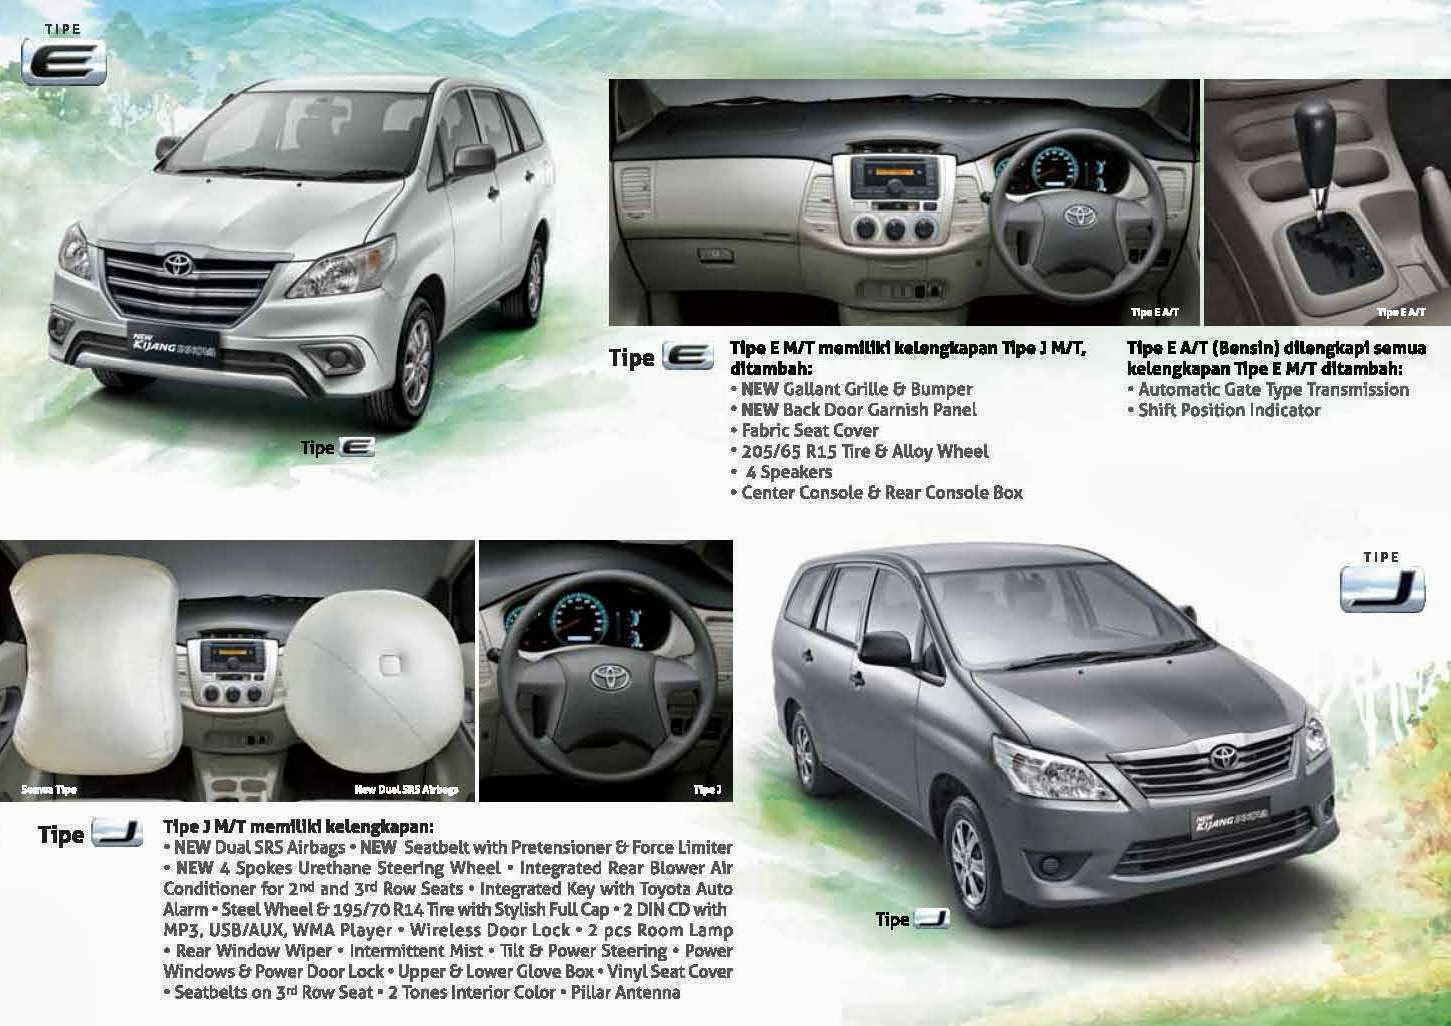 Grand New Kijang Innova Harga Headlamp Veloz Brosur Toyota 2014 Promo Dealer